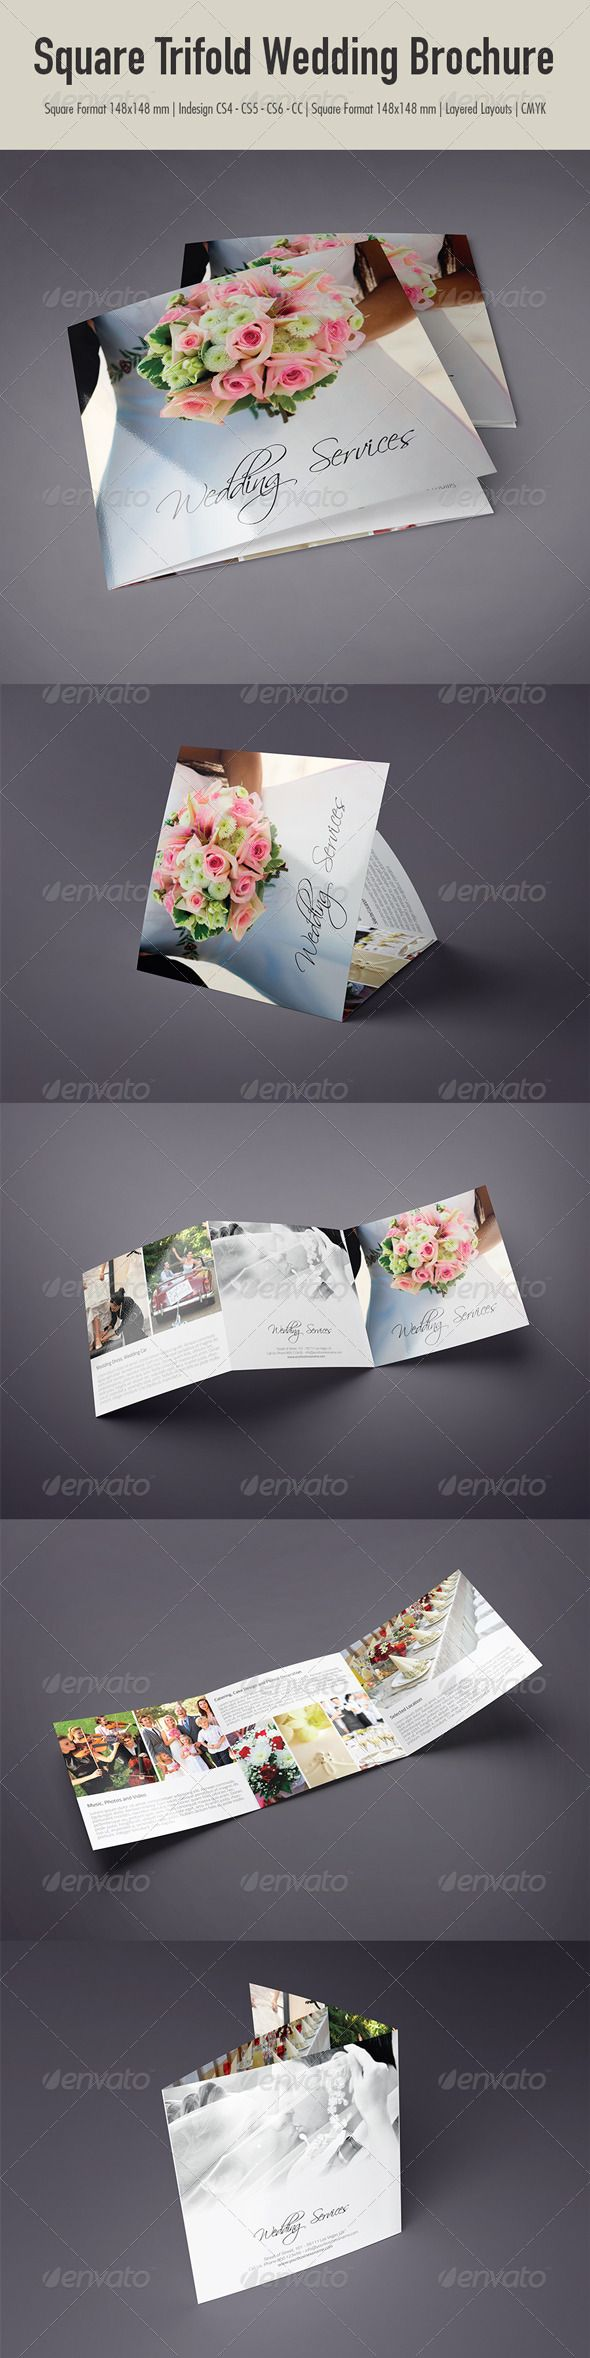 InDesign Square Trifold Wedding Brochure  Template • Only available here ➝ http://graphicriver.net/item/square-trifold-wedding-brochure/7406343?ref=pxcr